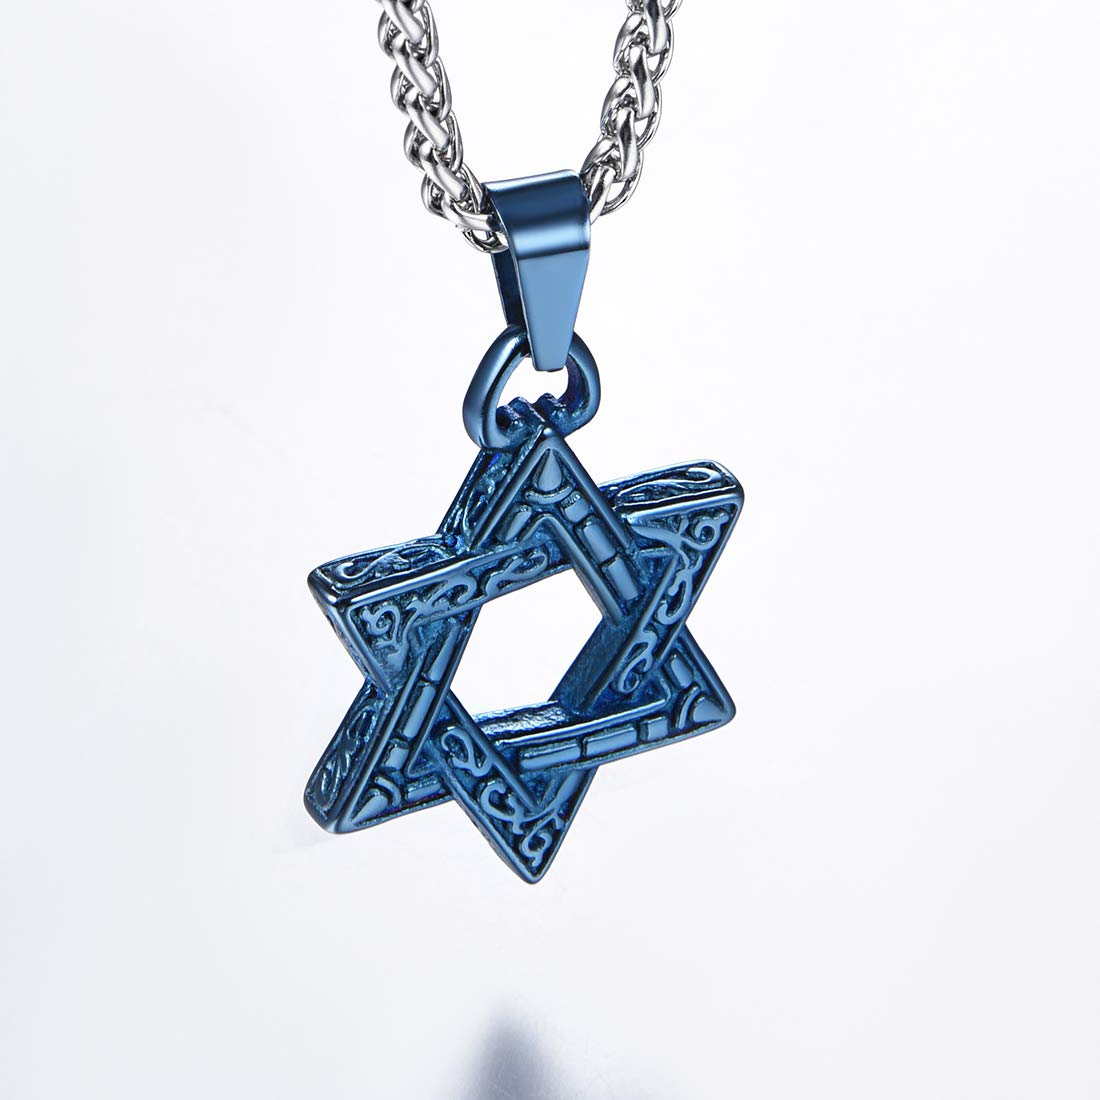 U7 Star of David Necklace with Free Chain Men Women Amulet Stainless Steel 18K Gold Plated Jewish Jewelry Israel Necklace